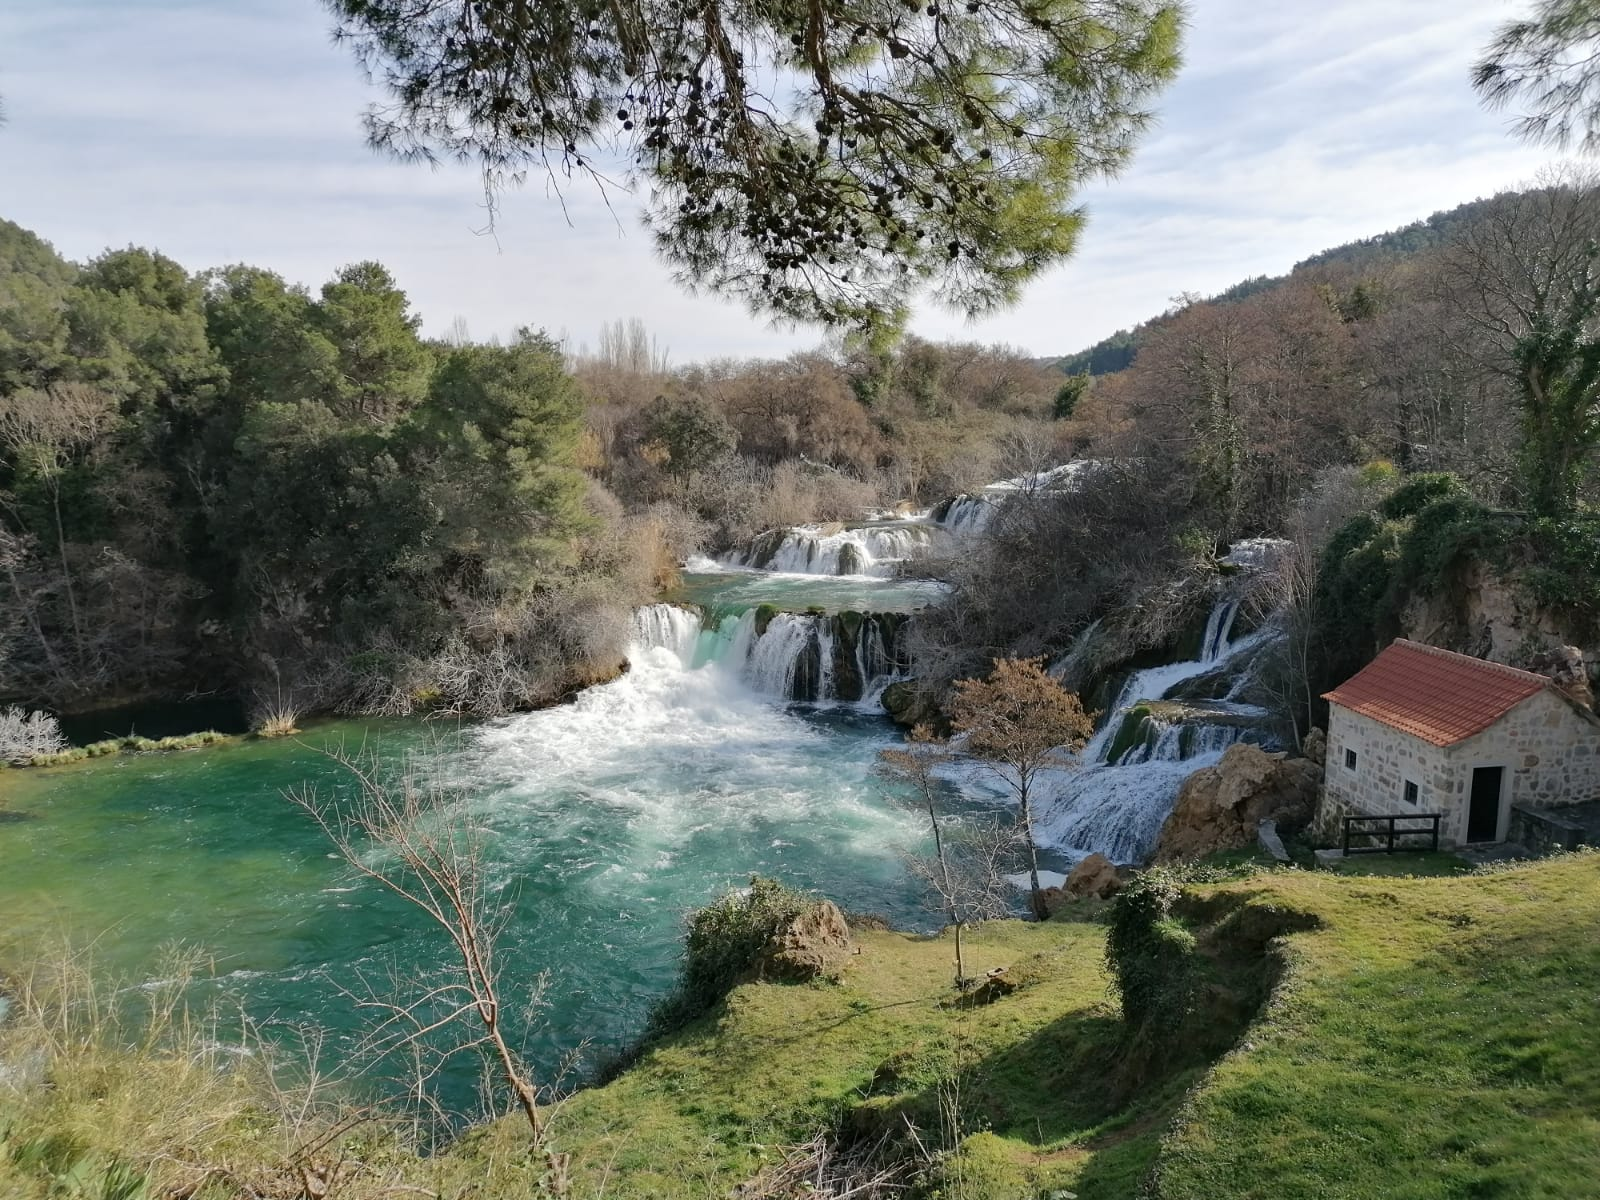 How to get to Krka Waterfalls